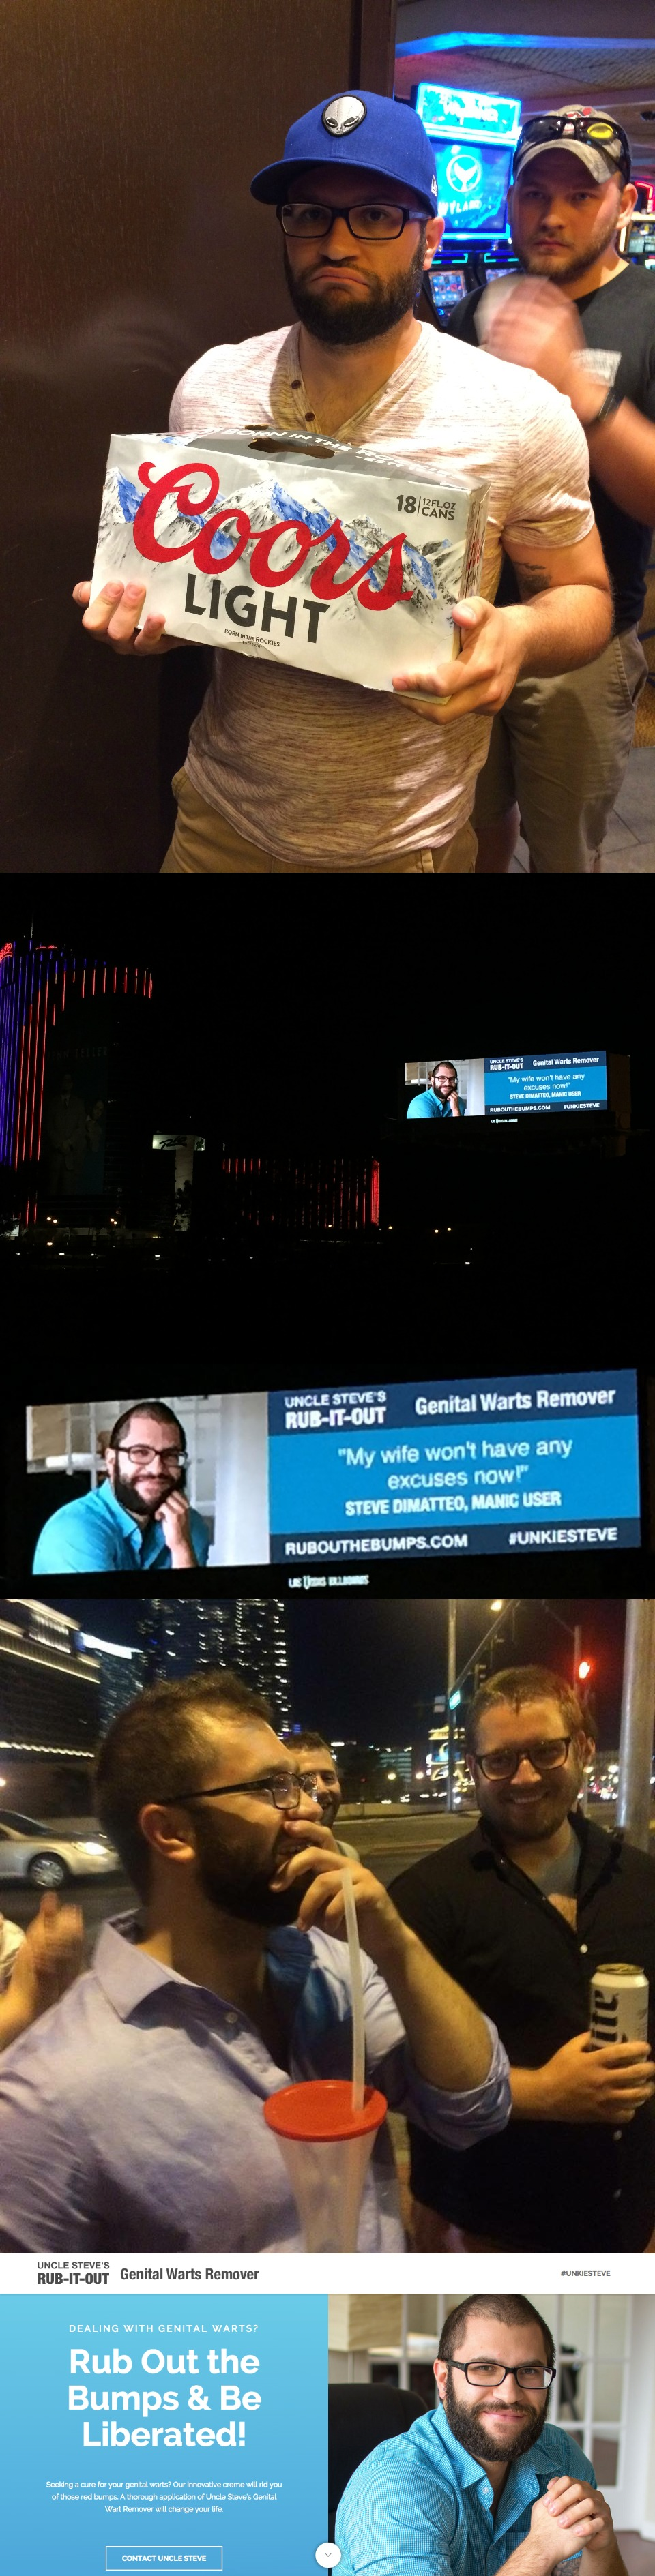 Friends rent billboard on Las Vegas strip for epic bachelor party prank. Congrats UnkieSteve!